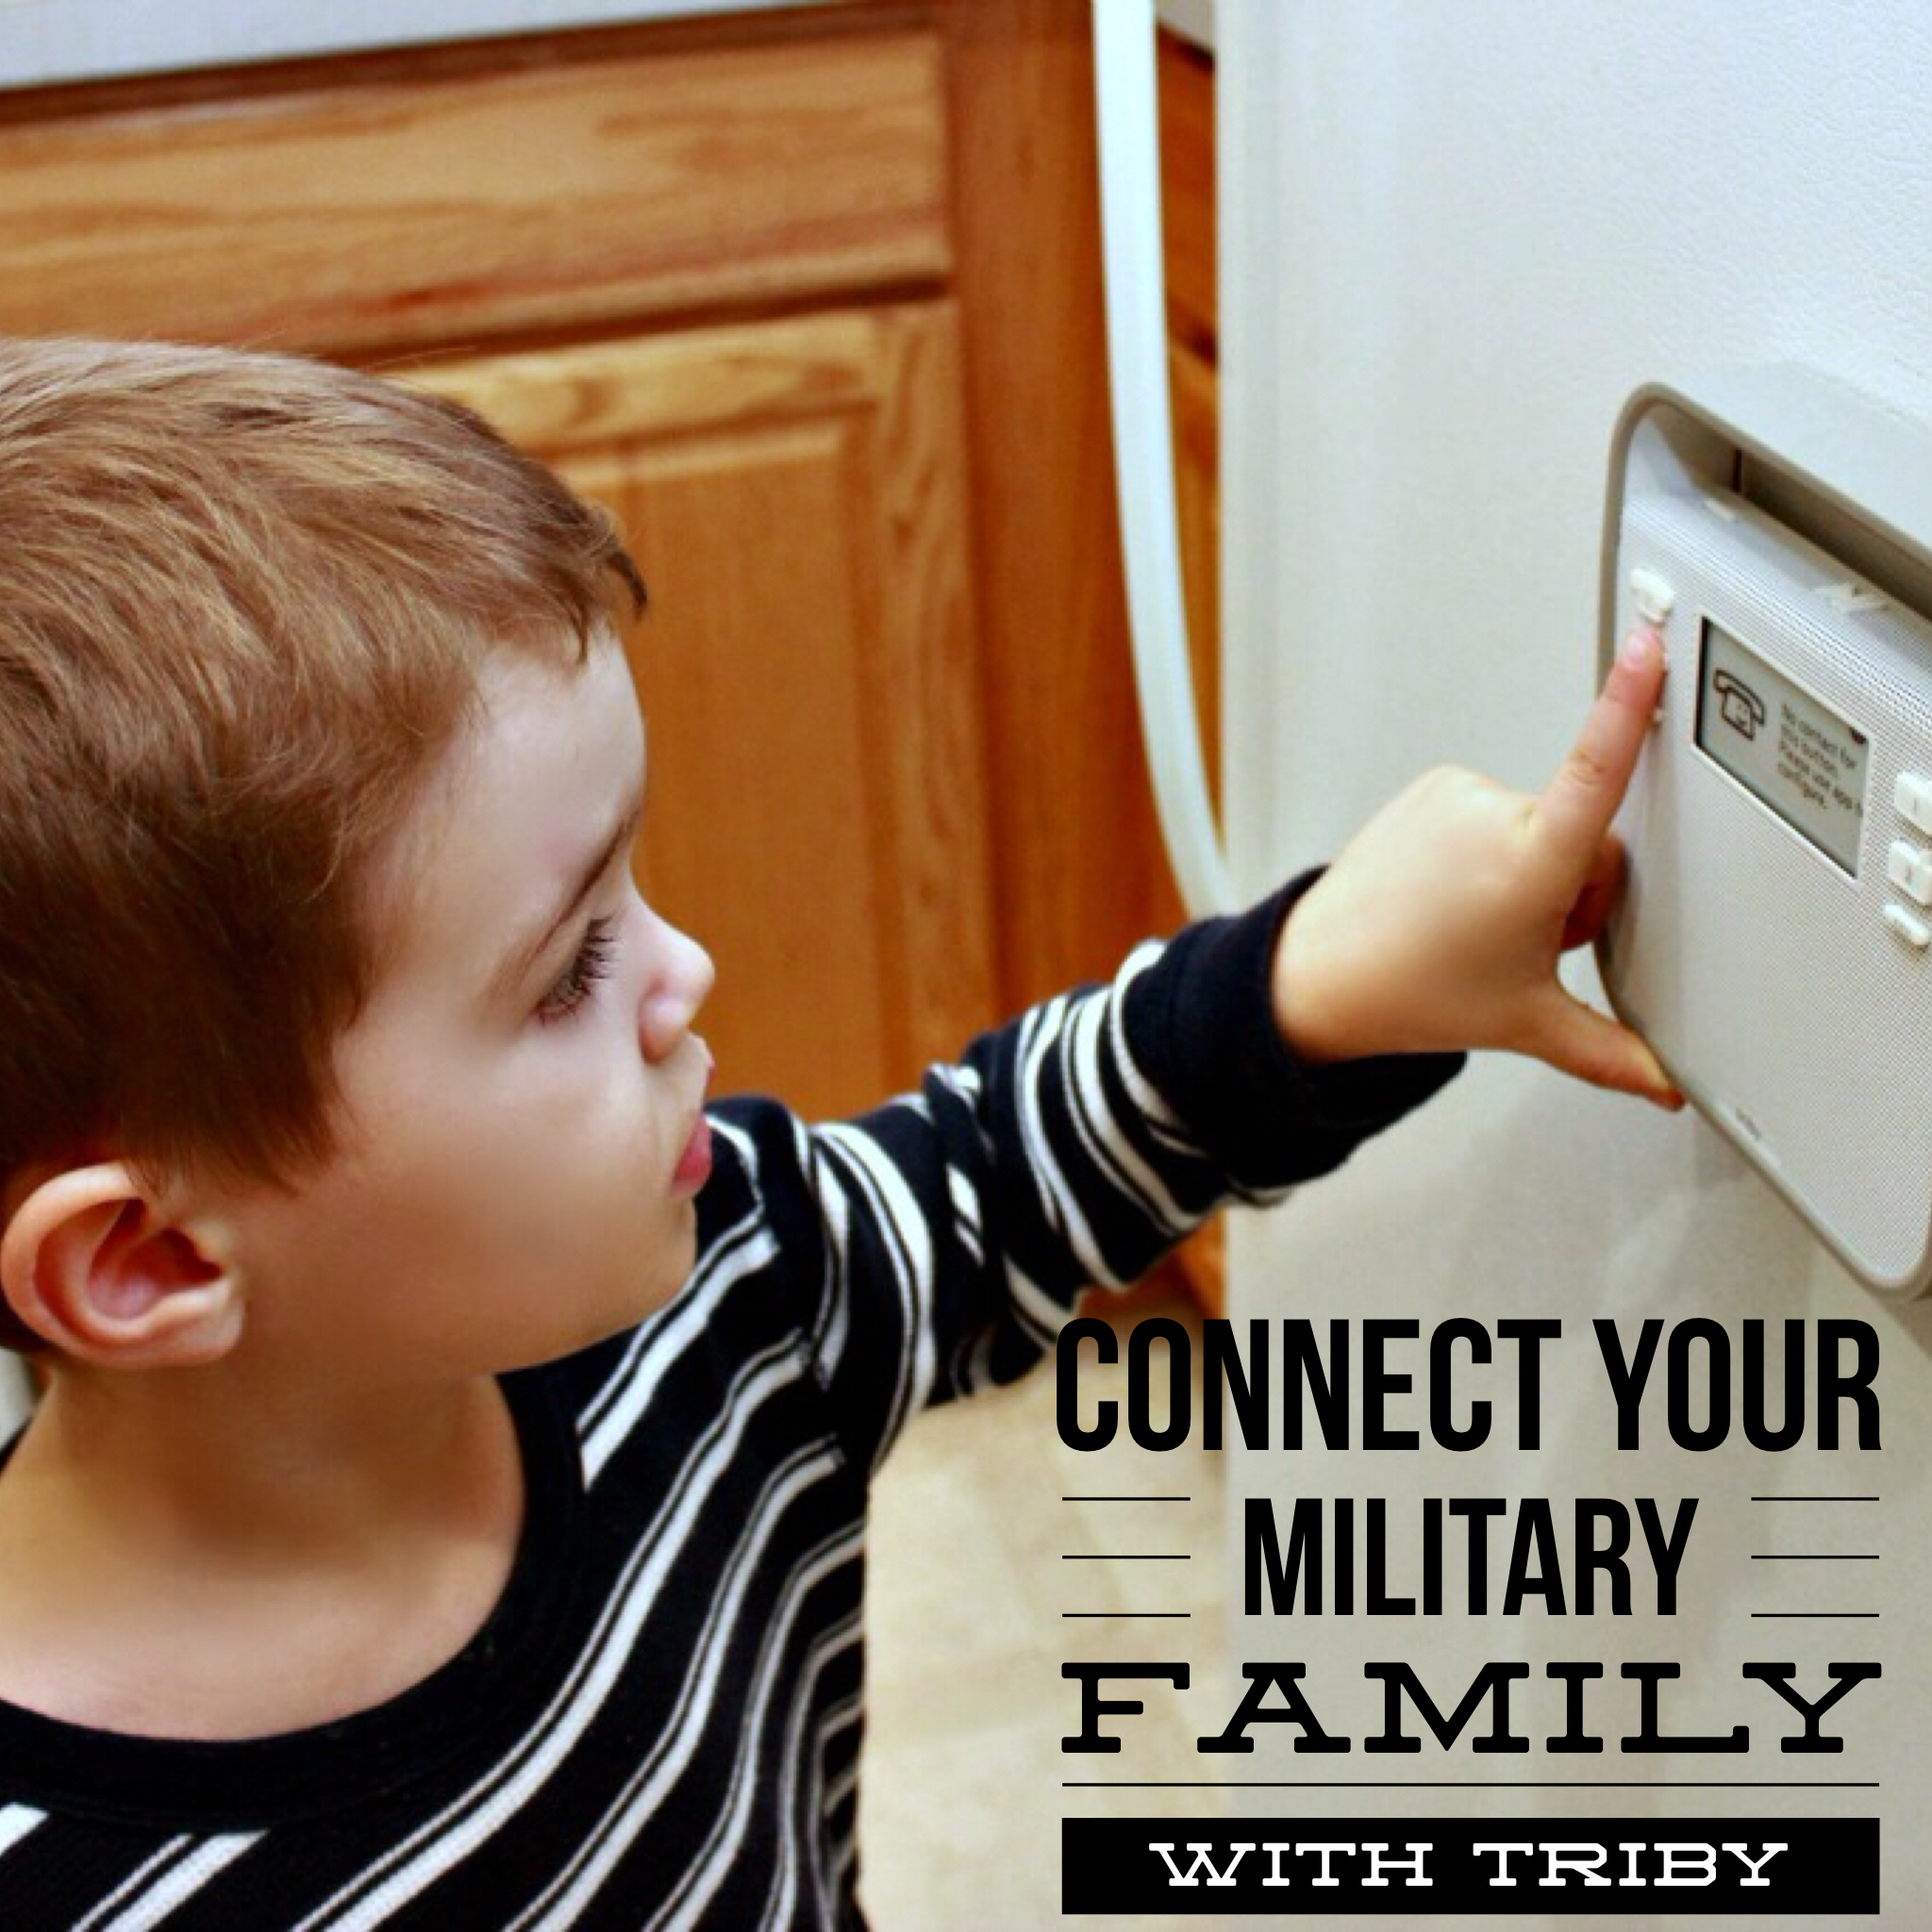 Connect Your Military Family With Triby (Sponsored)